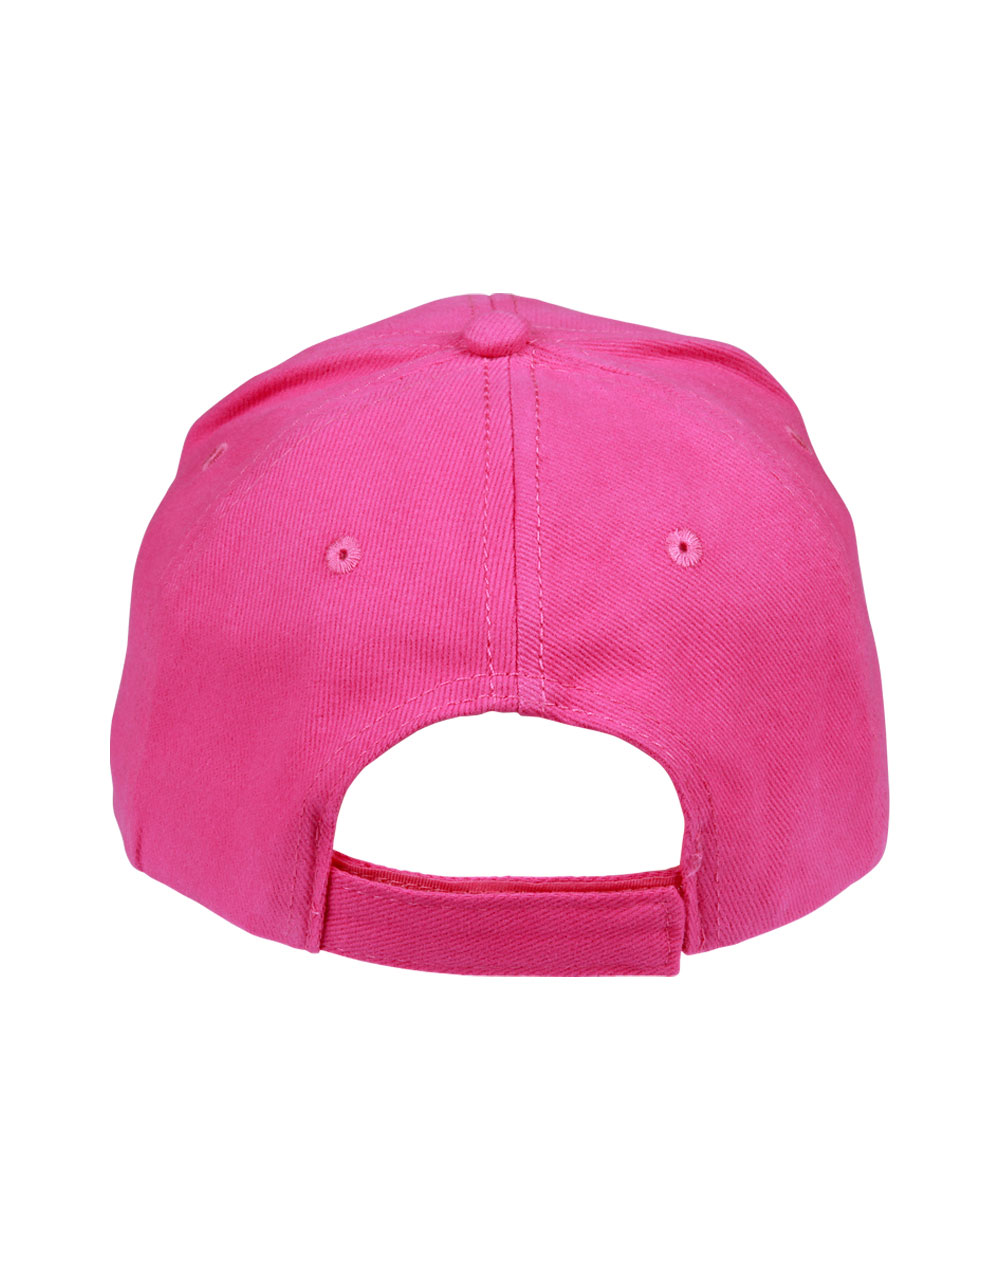 https://s3-ap-southeast-1.amazonaws.com/ws-imgs/CAPS/CH01_HotPink_Back.jpg